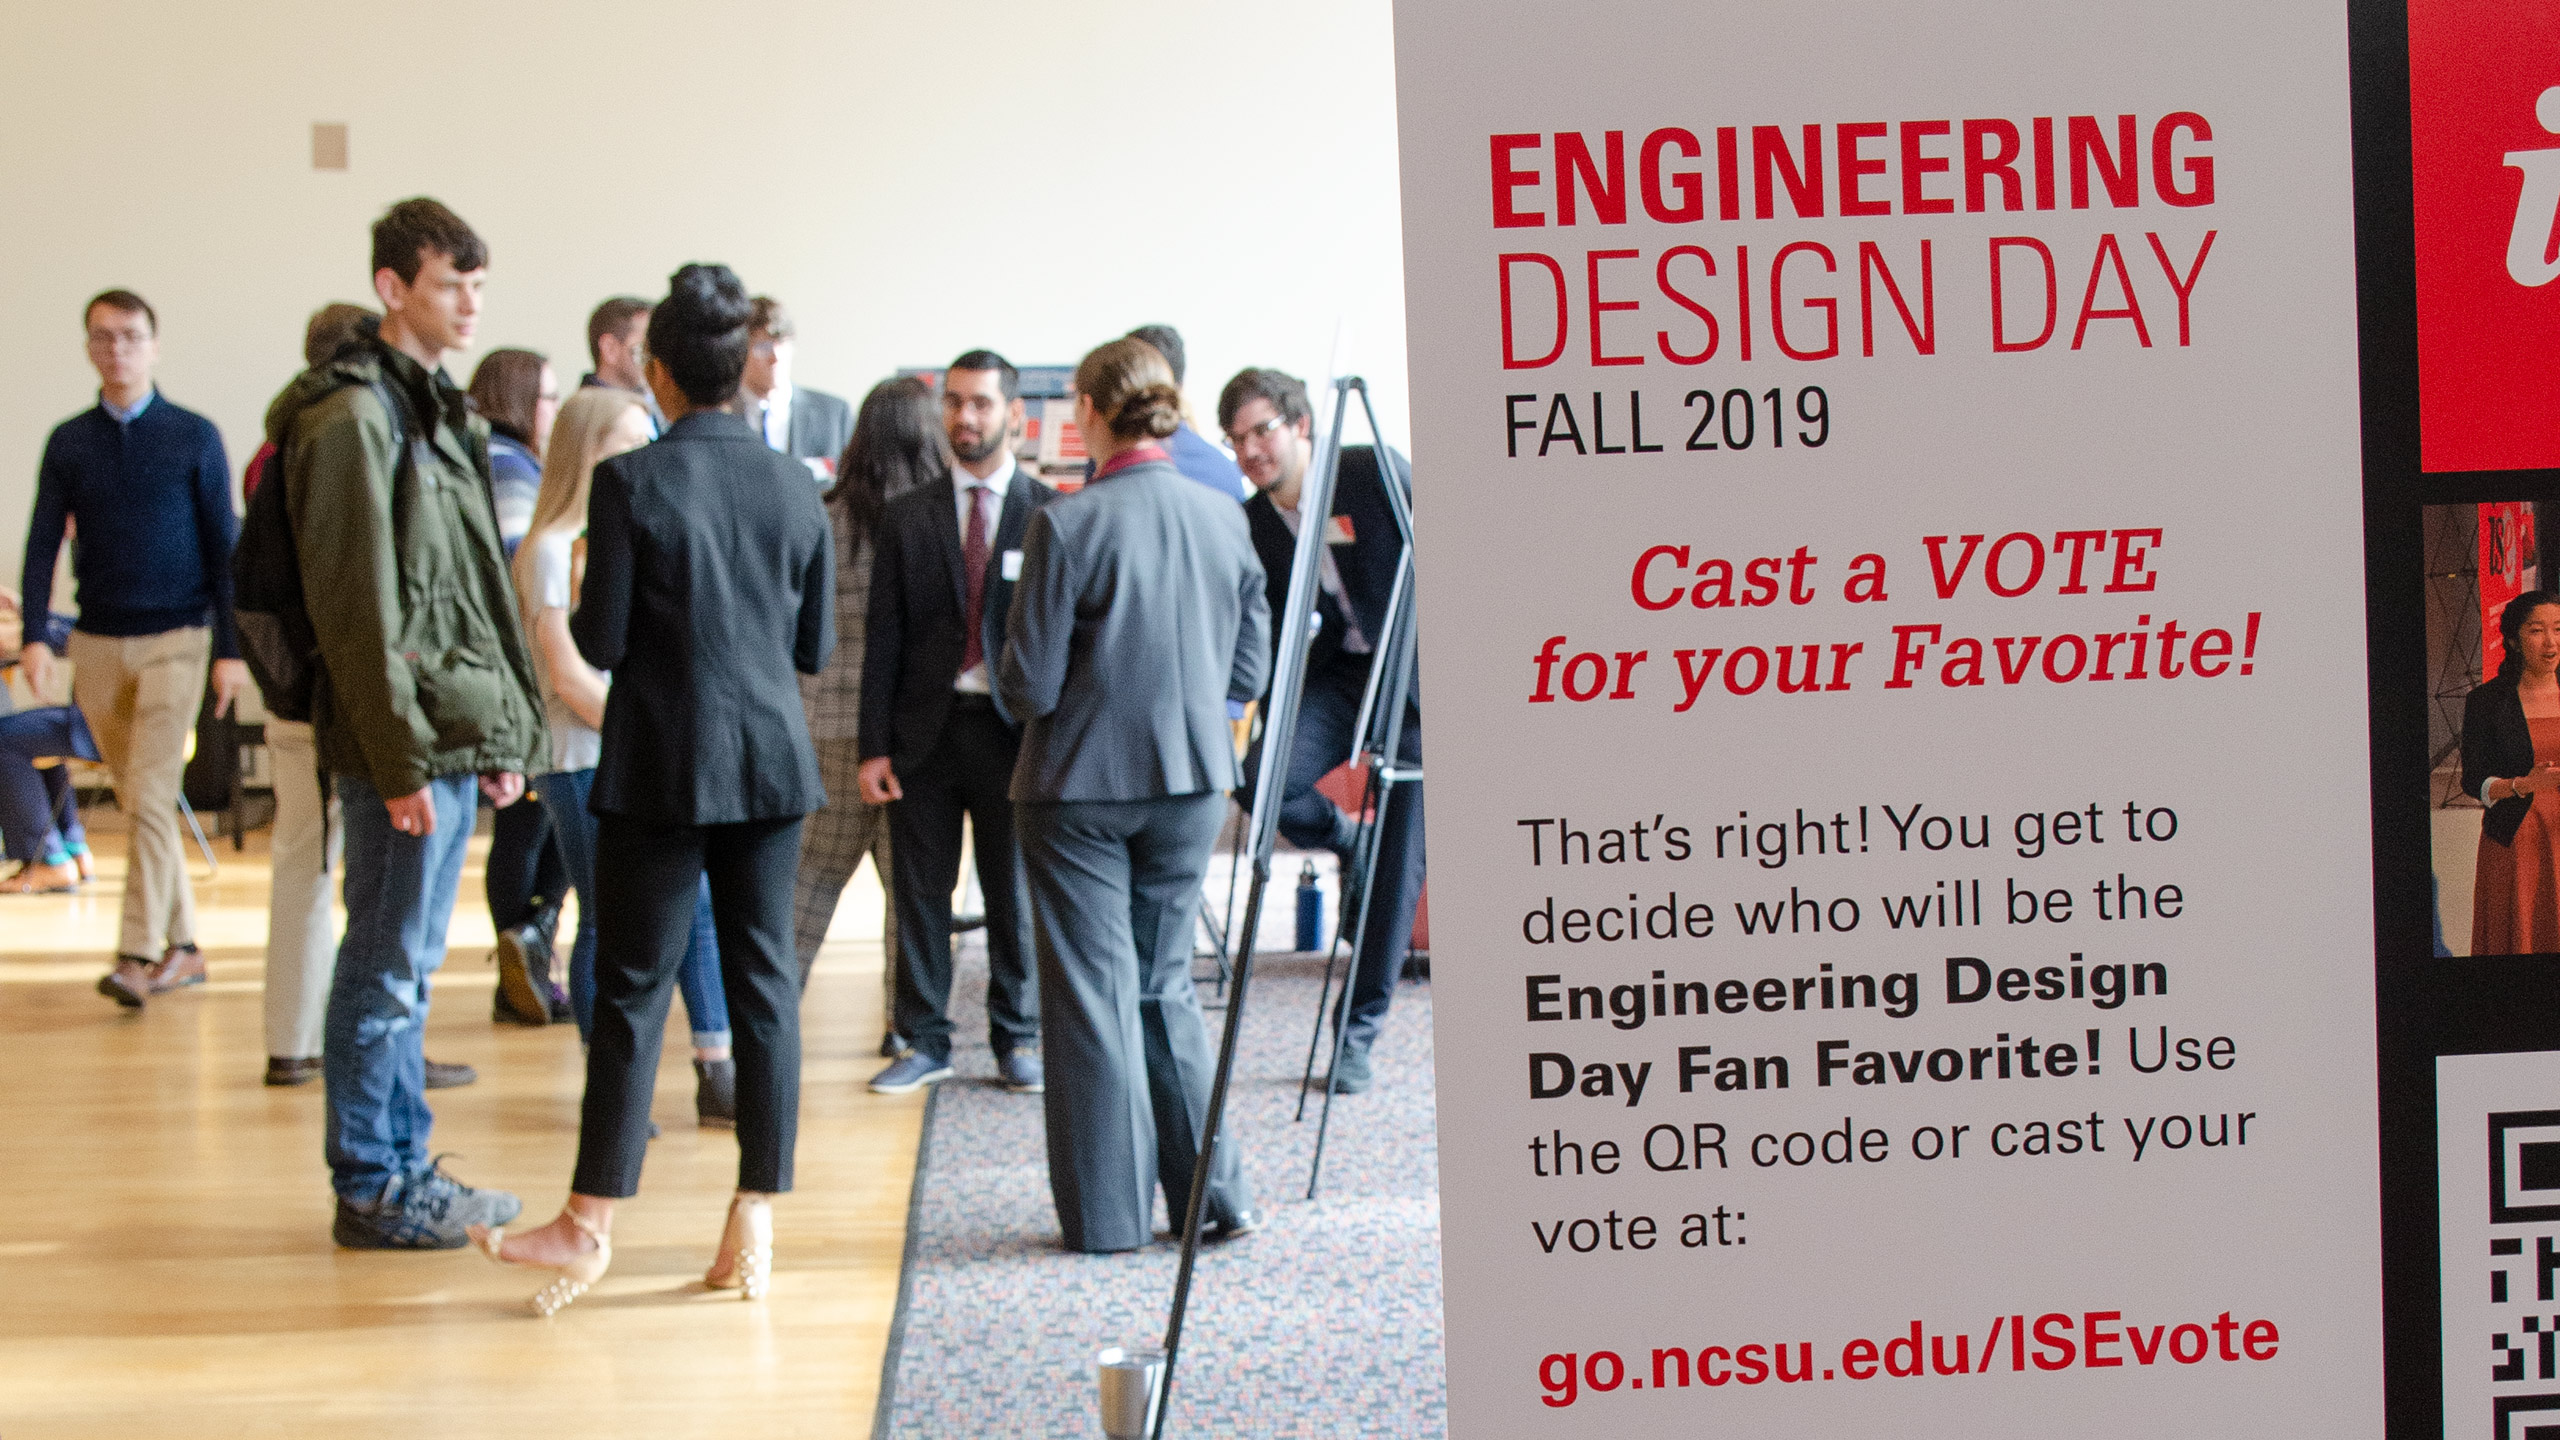 Engineering Design Day | Fall 2019